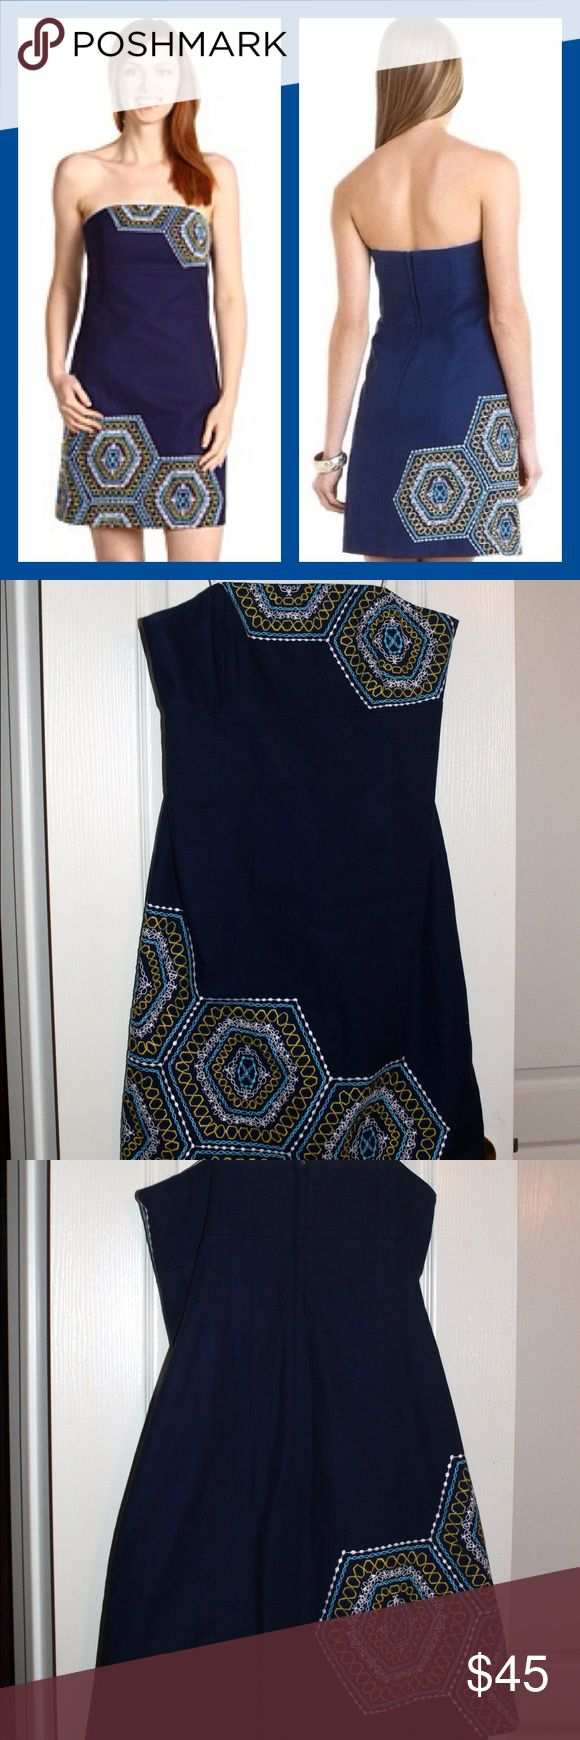 Lilly Pulitzer Bowen Honeycomb Home Dress Lilly Pulitzer strapless dress in bright navy. Has an empire silhouette and beautiful embroidery. It is in great condition and was only worn a handful of times! Lilly Pulitzer Dresses Strapless